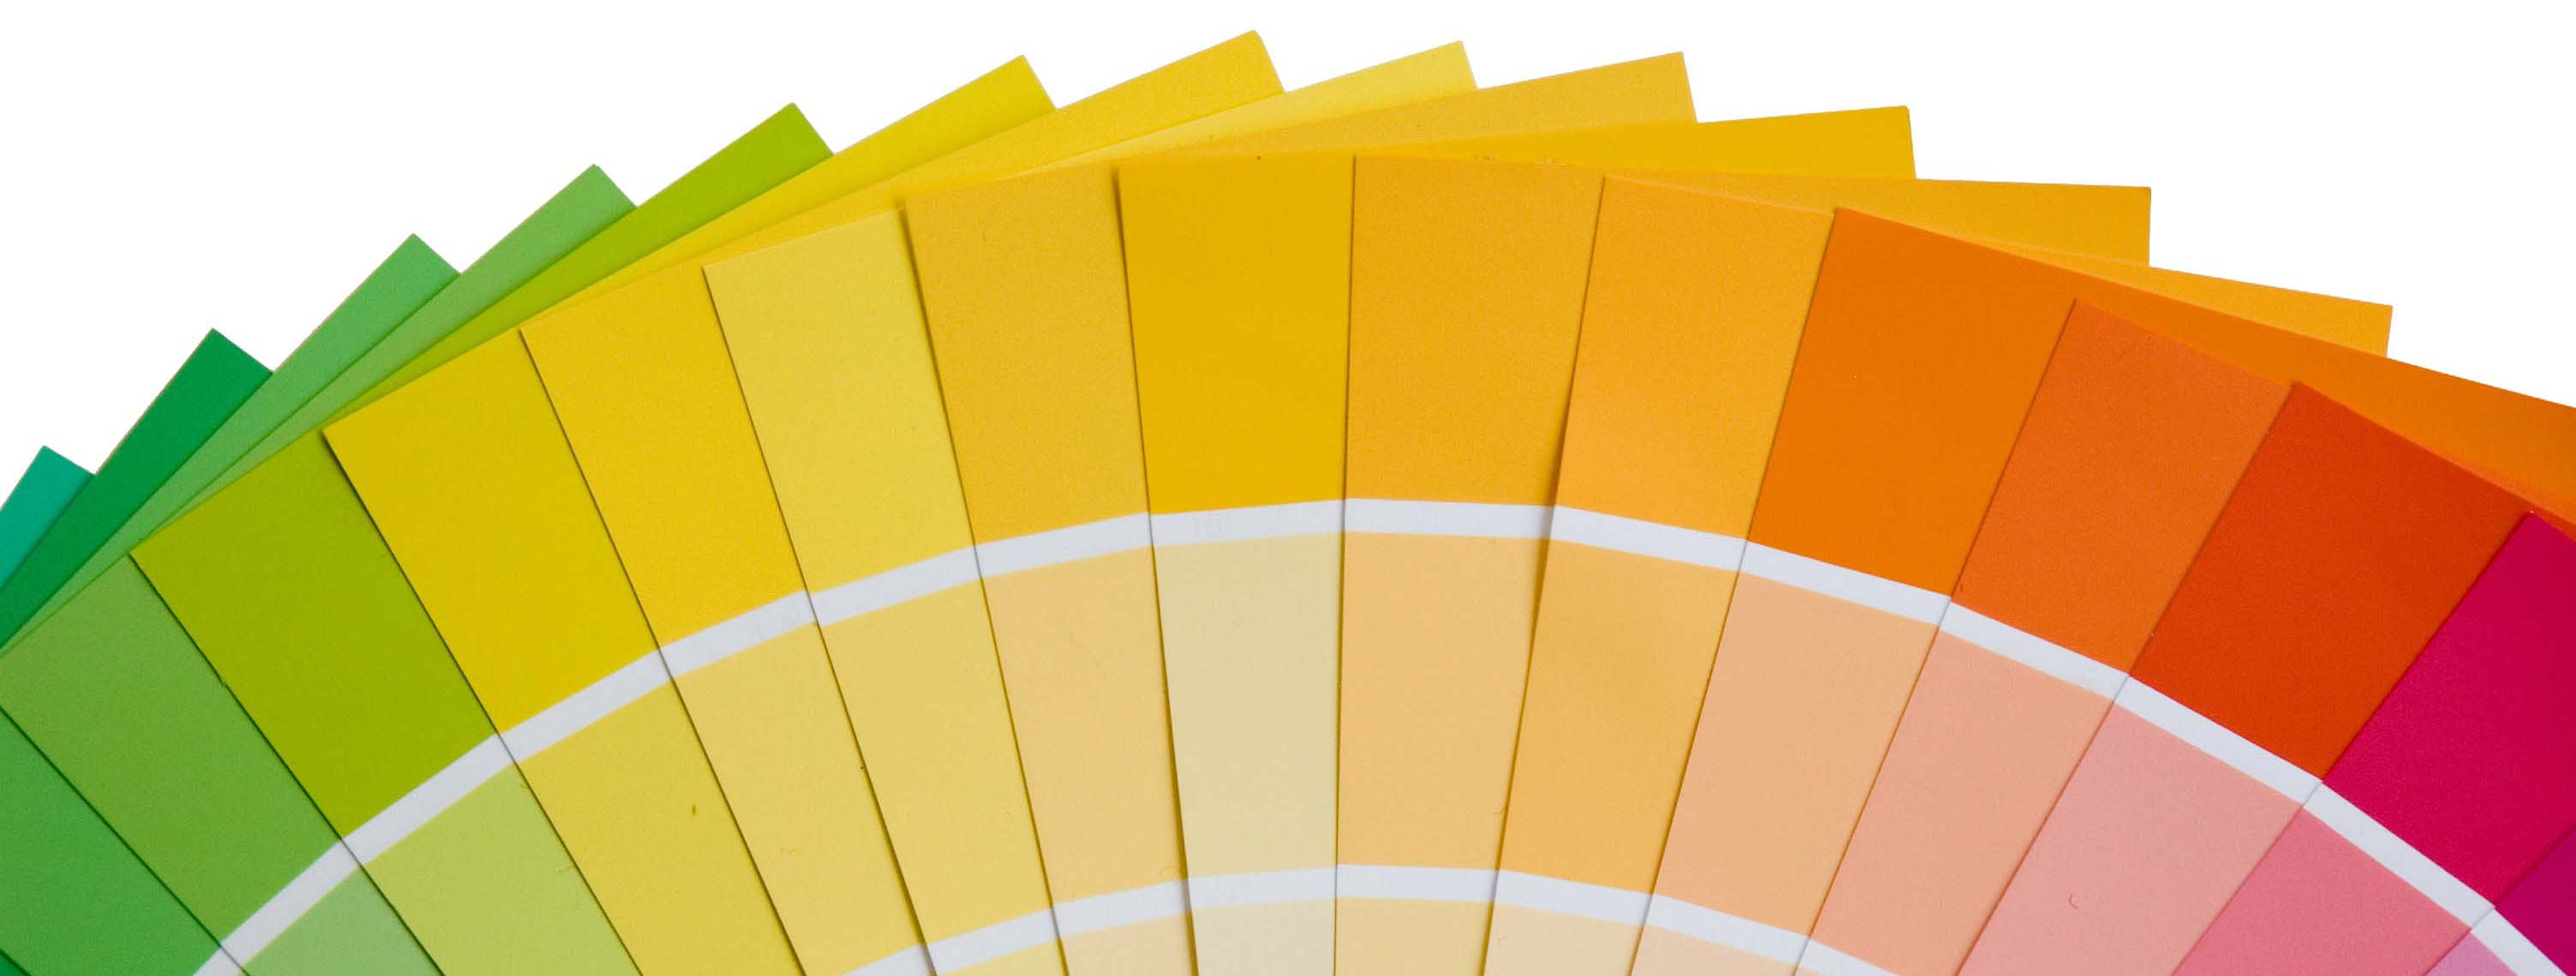 Our 4-Step System for Picking Paint Colors